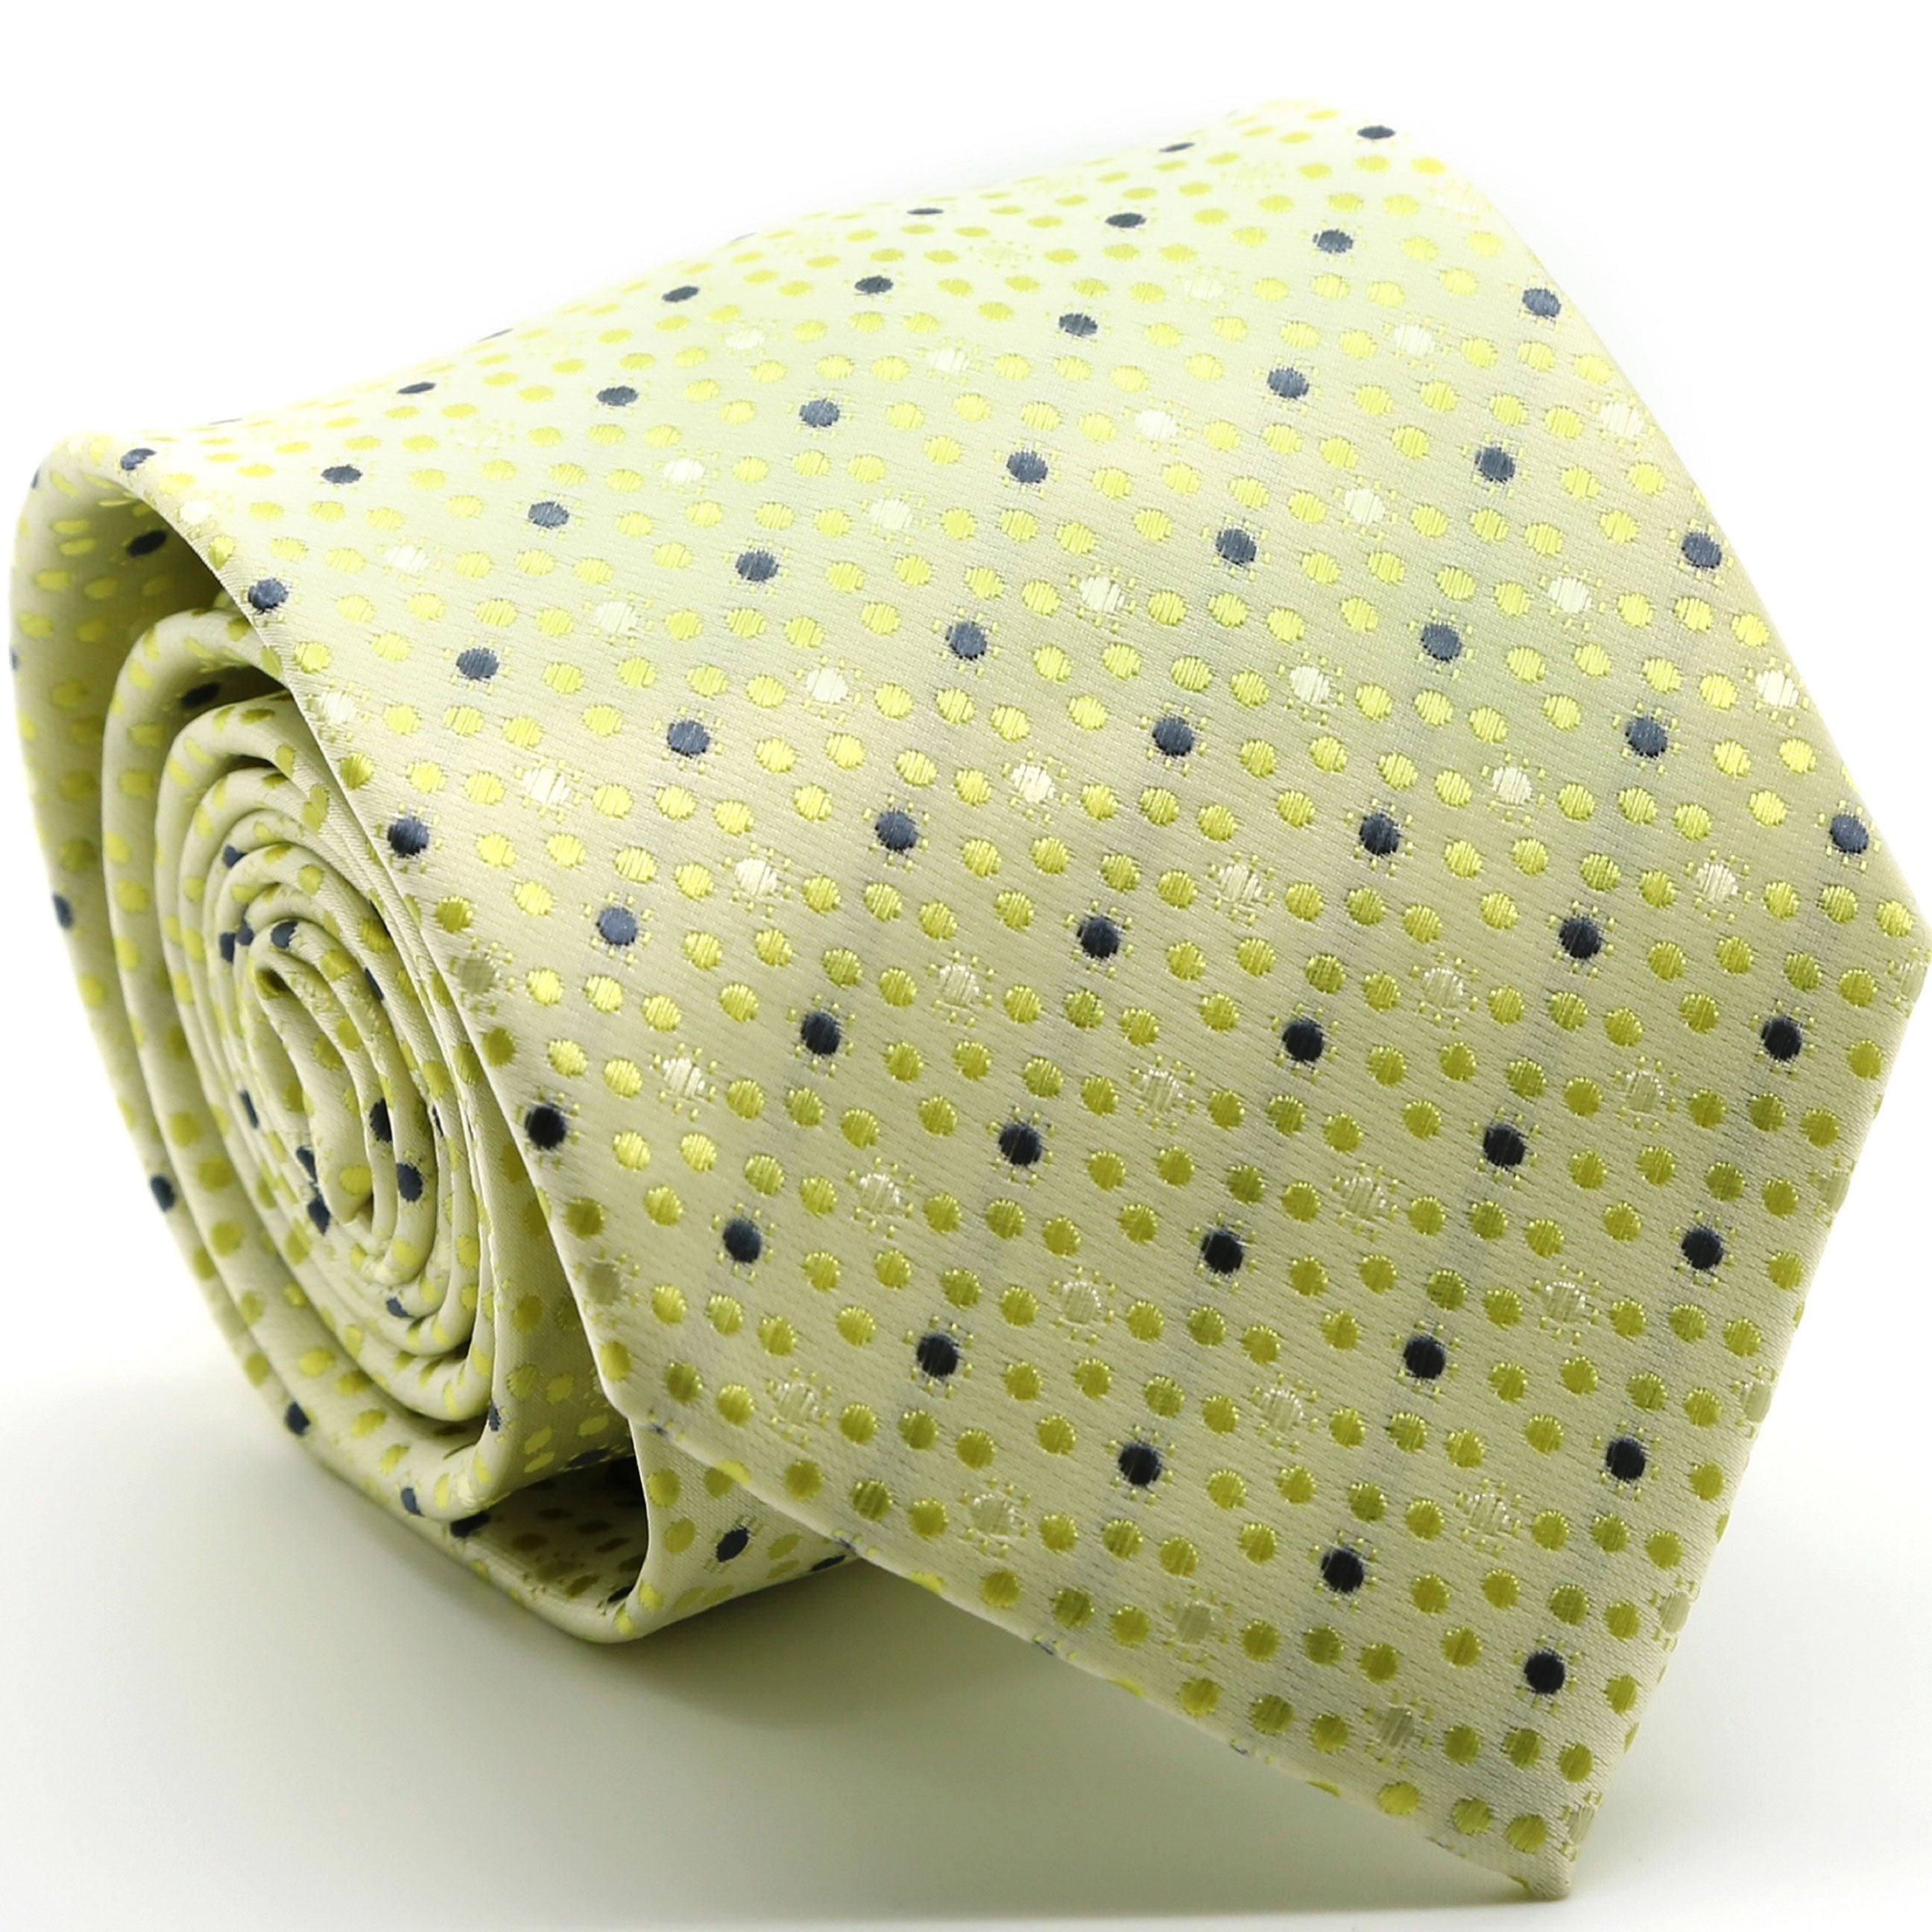 Mens Dads Classic Yellow Dot Pattern Business Casual Necktie & Hanky Set M-1 - Giorgio's Menswear